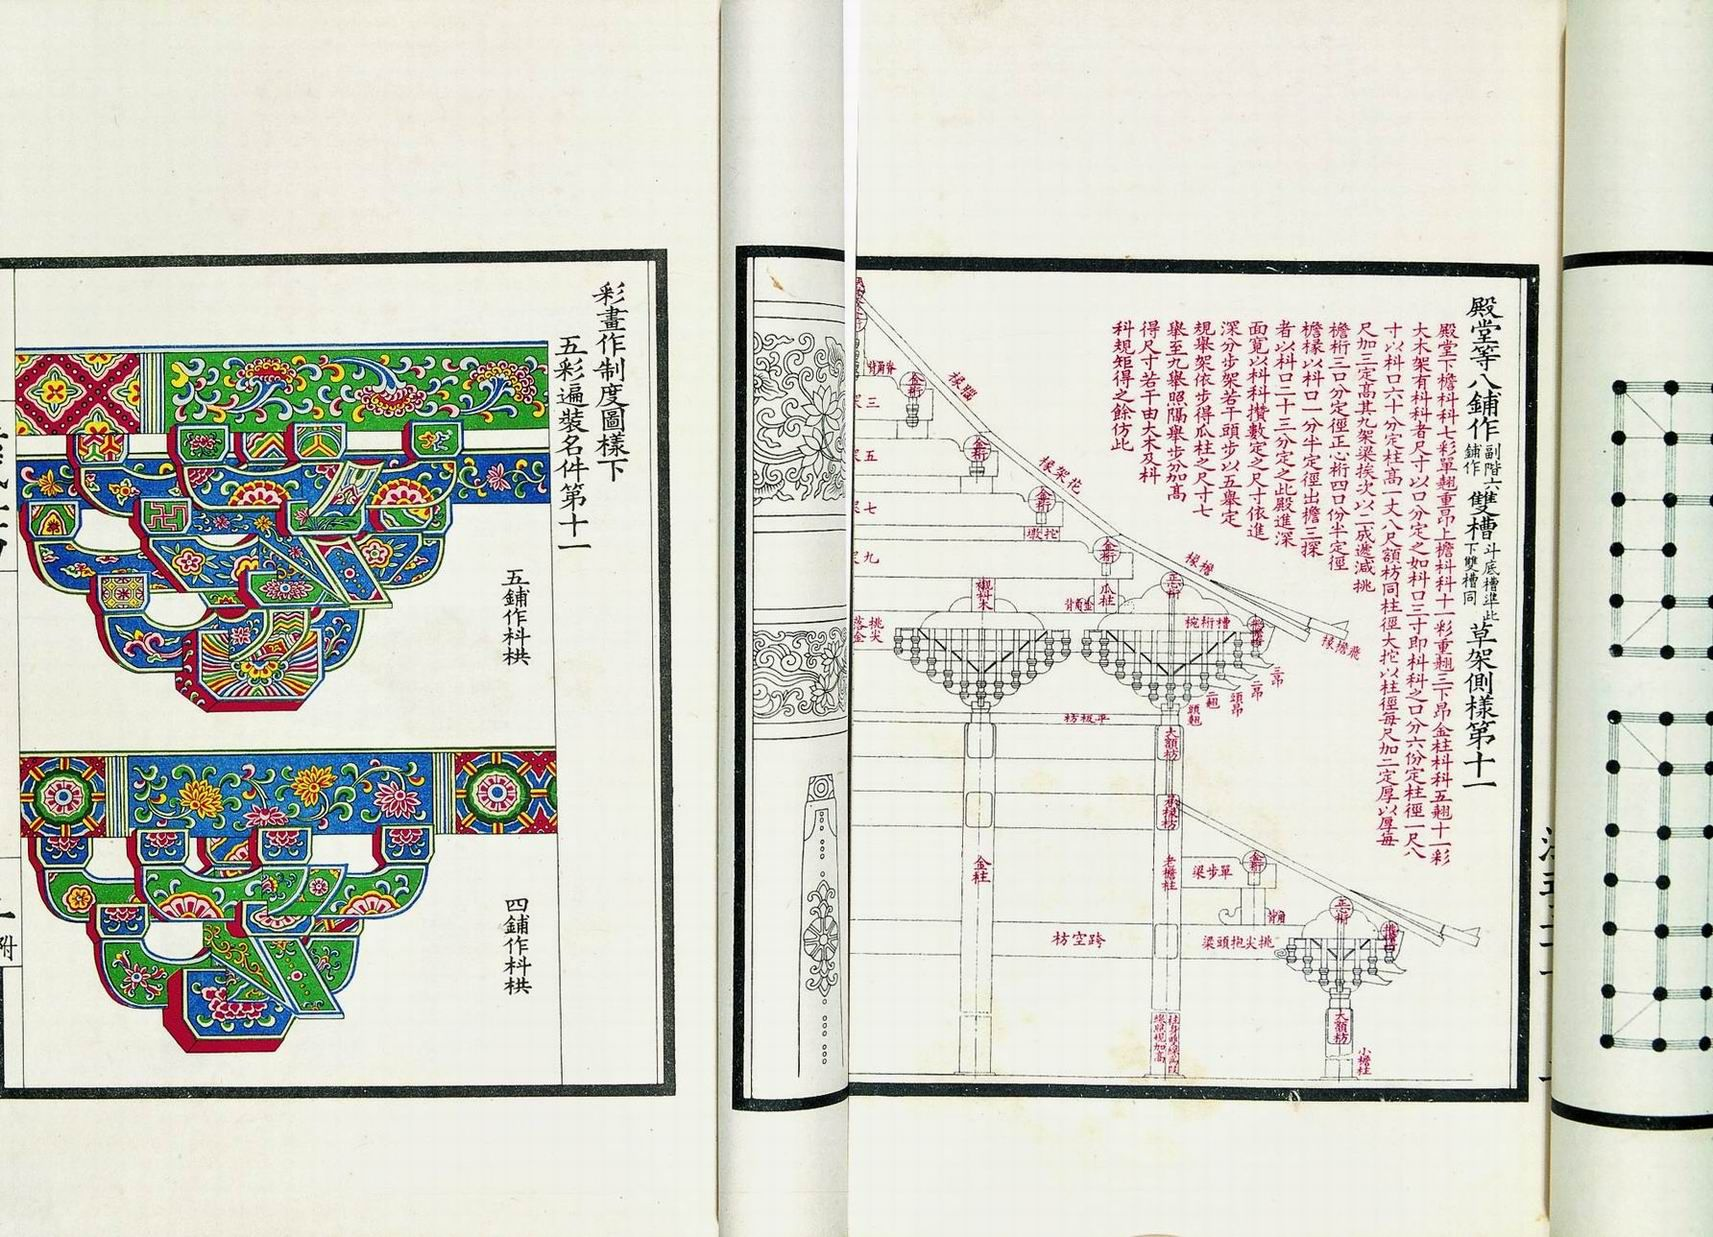 Pin by Di Luo on Yingzao Fashi 營造法式 | Supplies, Bullet journal, China